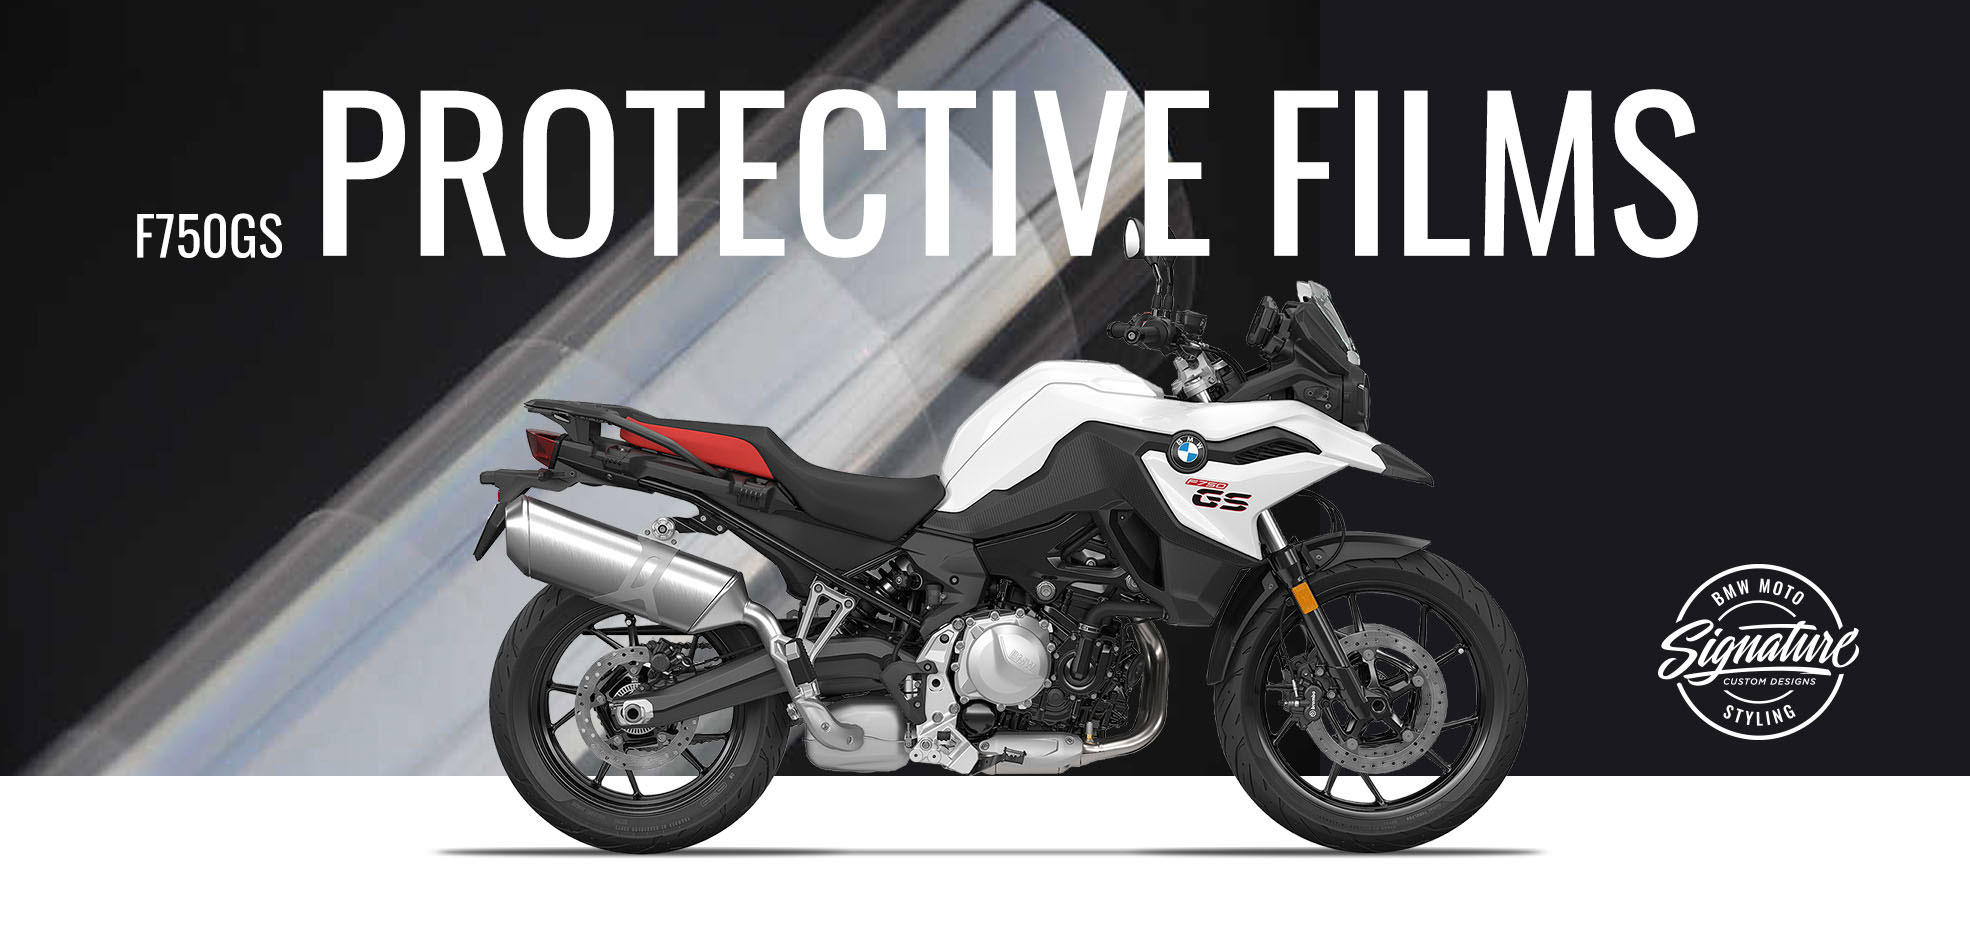 Webside Slider F750GS Protective Films 2